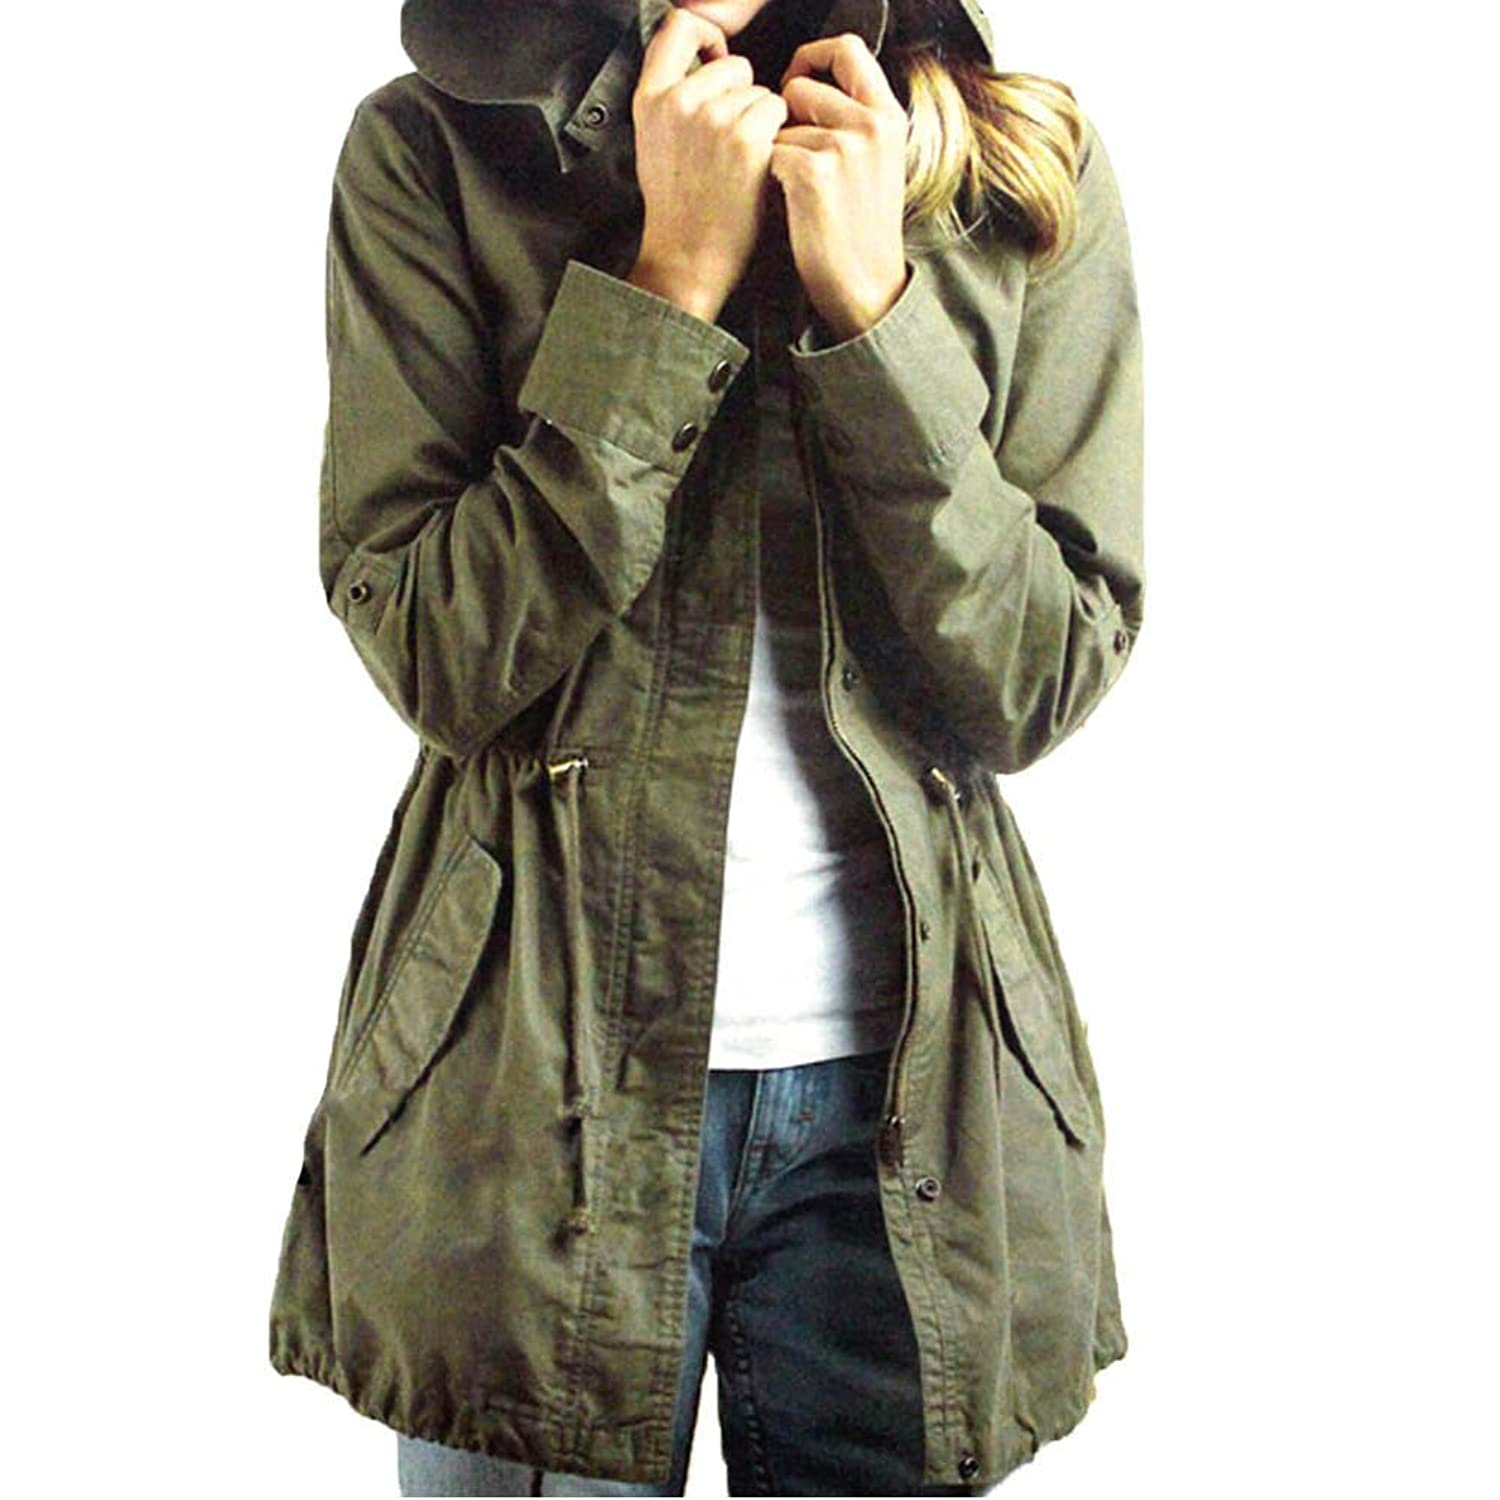 Amazon.com: Norbi Womens Hoodie Drawstring Army Green Military ...